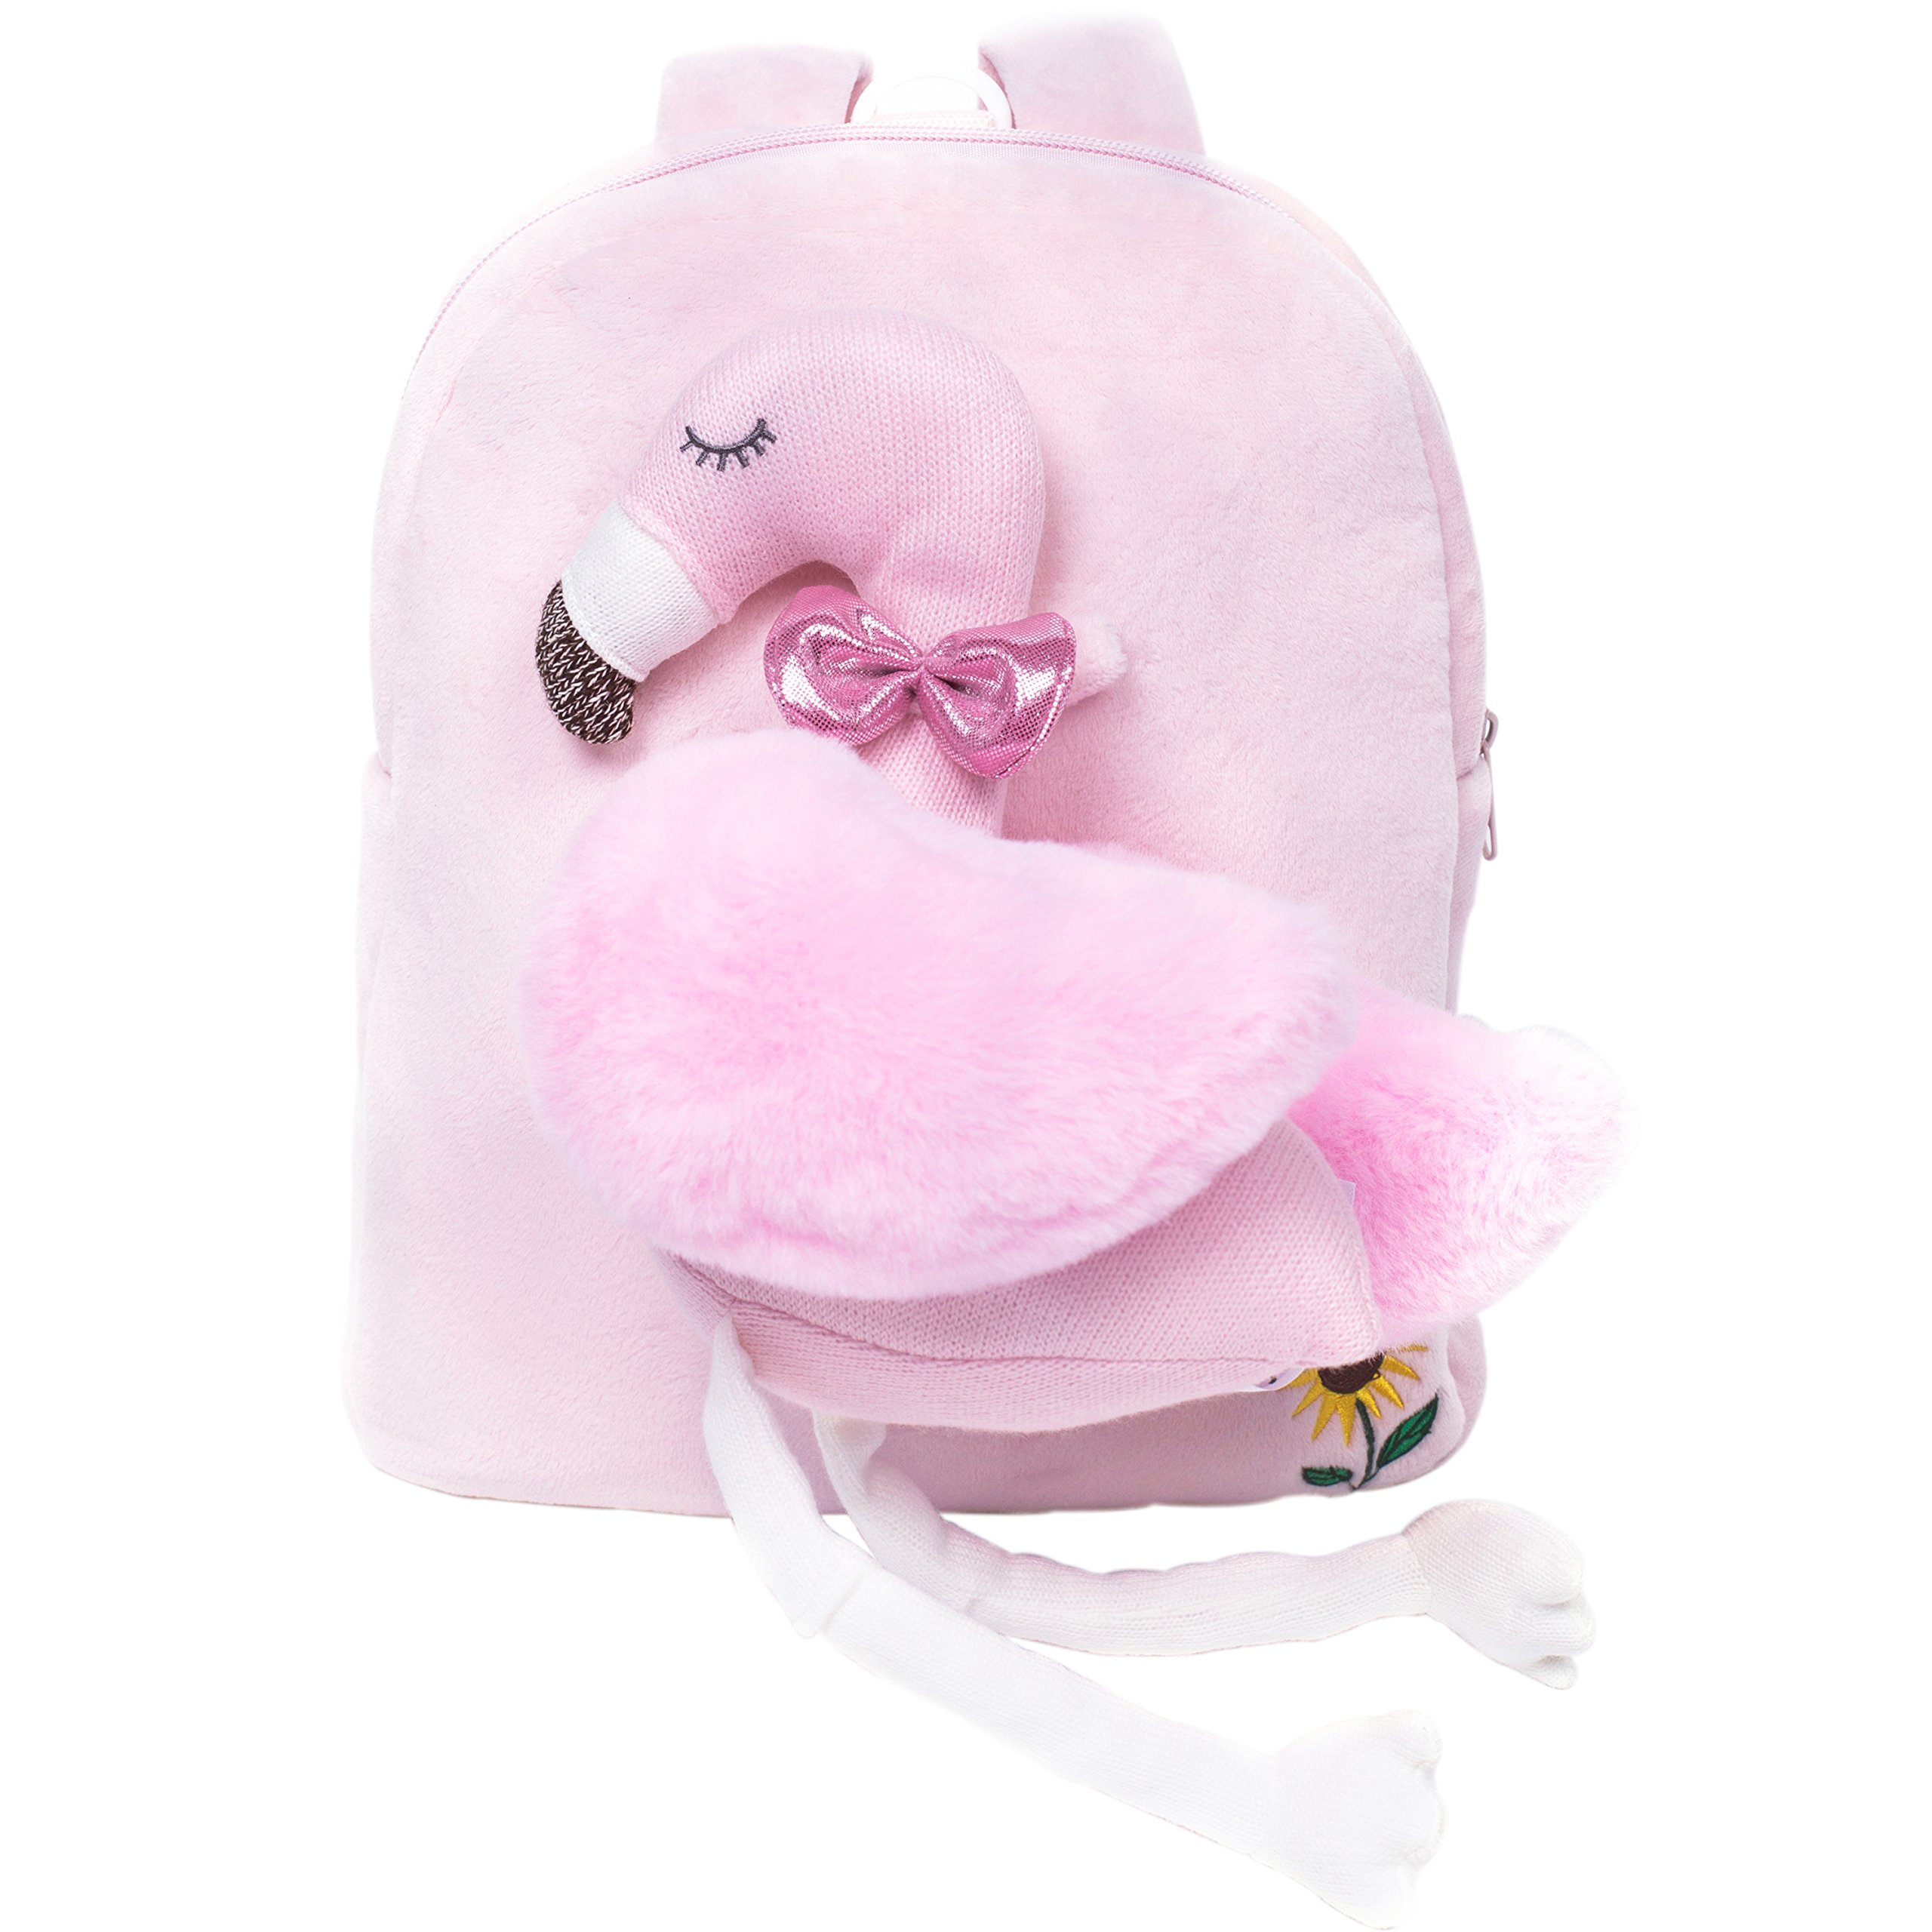 Toddler Backpack-TALENTBABY Plush Kids Backpack with Leash Safety Harness and Cute 3D Cartoon Animals Toy for 1-6 Years Old Girls Boys(Pink Flamingo)